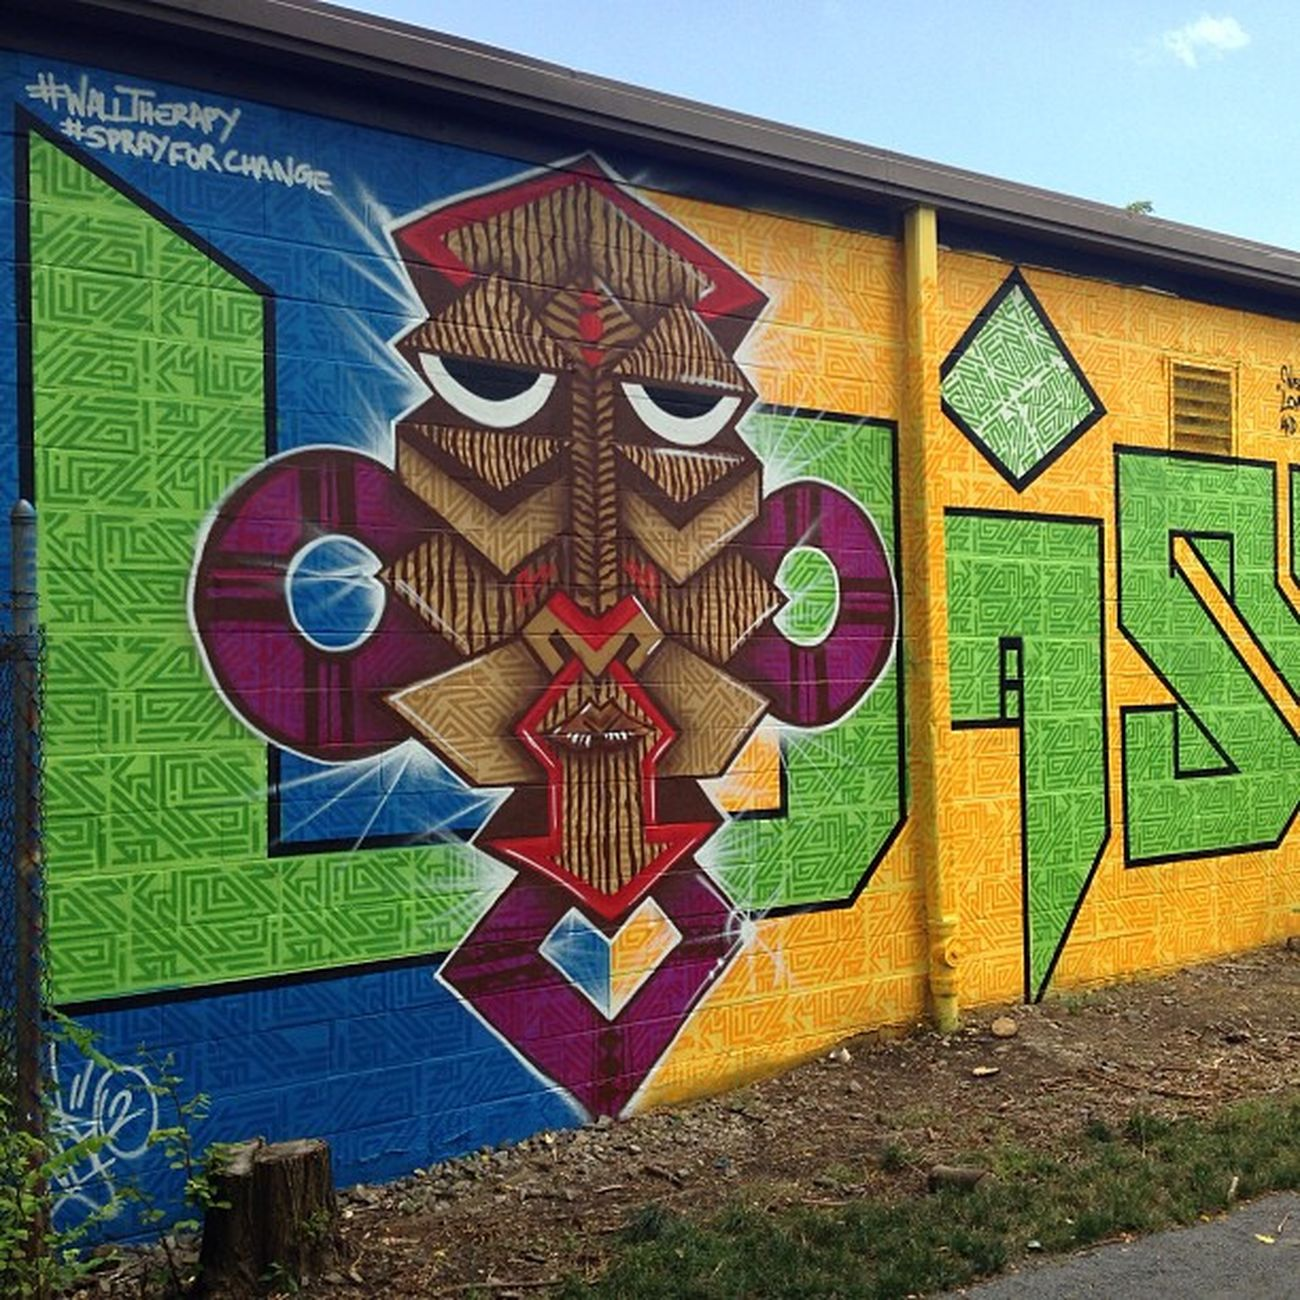 Finished Wisetwo mural for Walltherapy picture courtesy of @halopigg